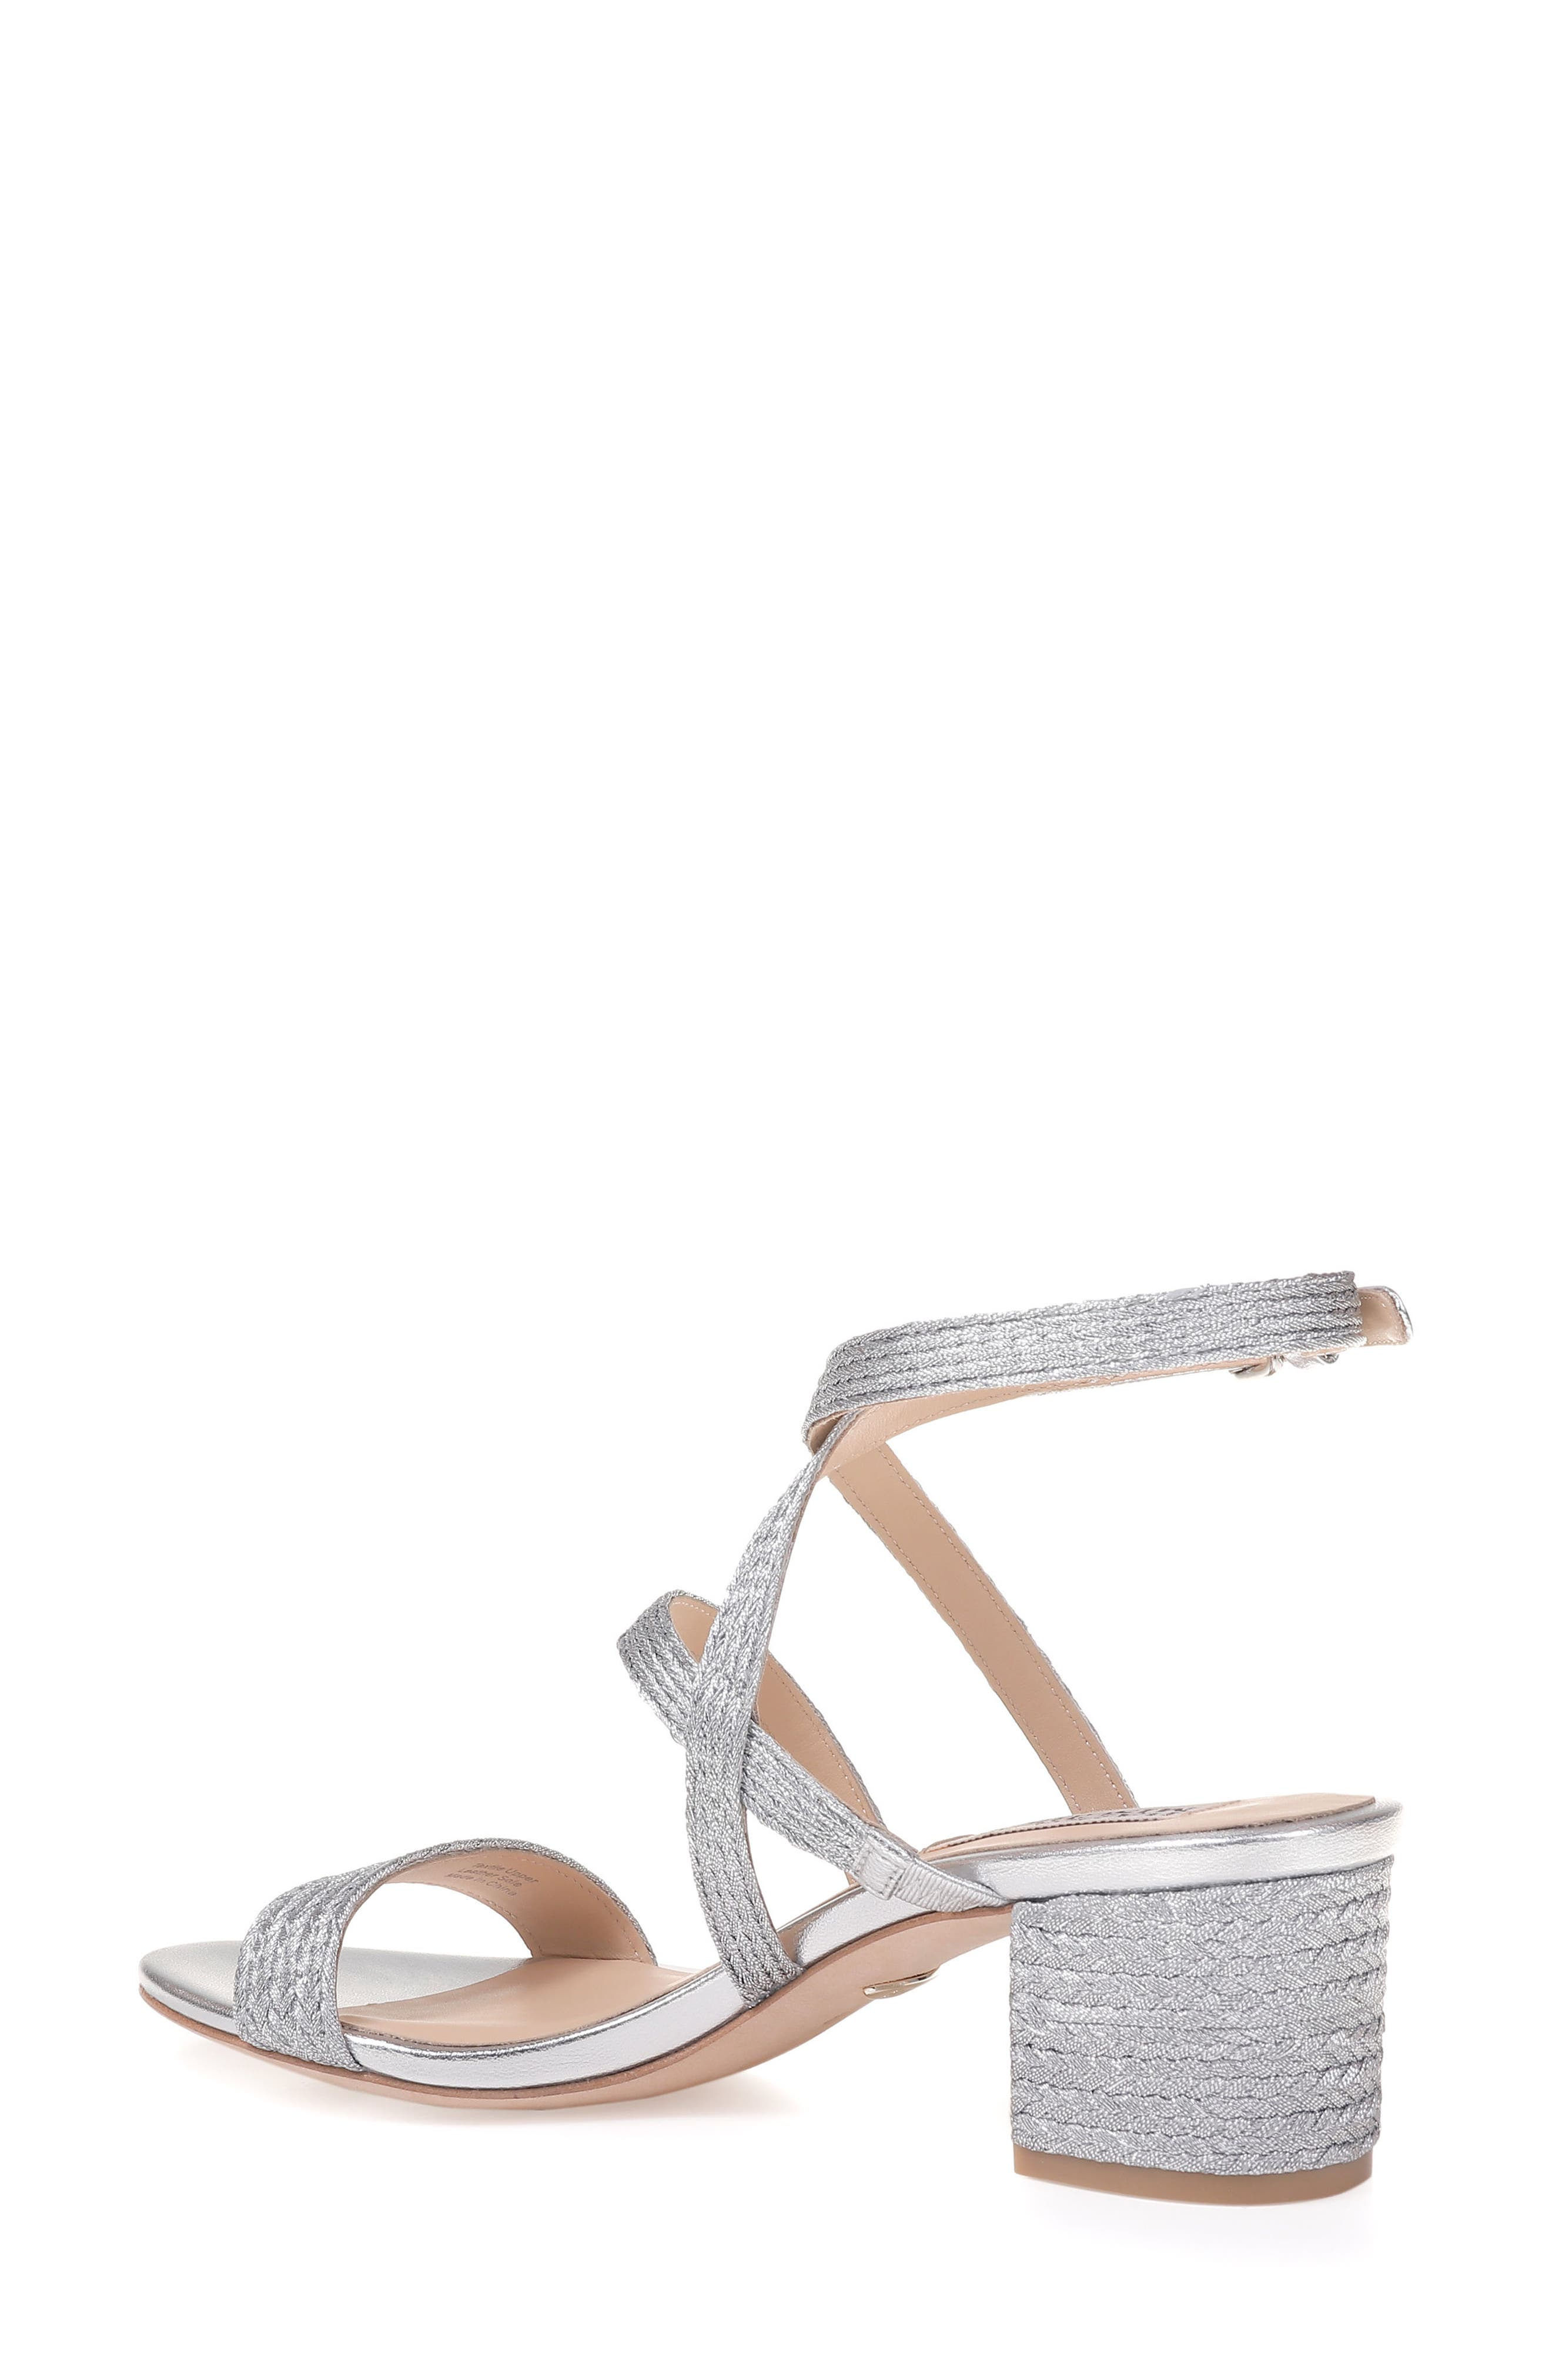 Alternate Image 2  - Badgley Mischka Storm Block Heel Sandal (Women)